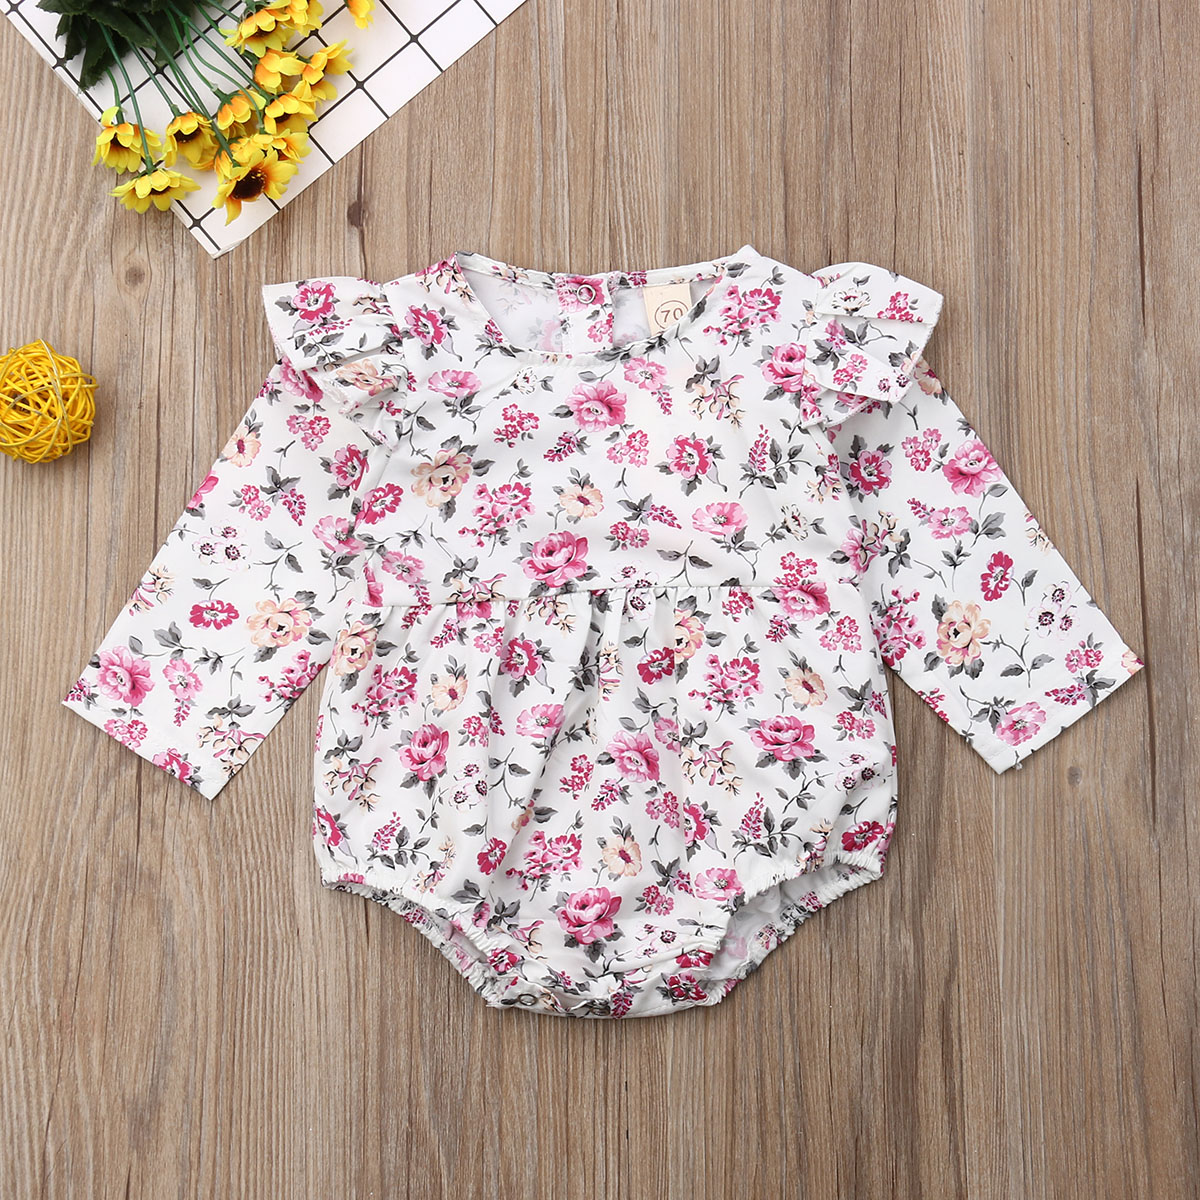 Pudcoco Newborn Baby Girl Clothes Flower Print Long Sleeve Romper Jumpsuit One-Piece Outfit Cotton Clothes